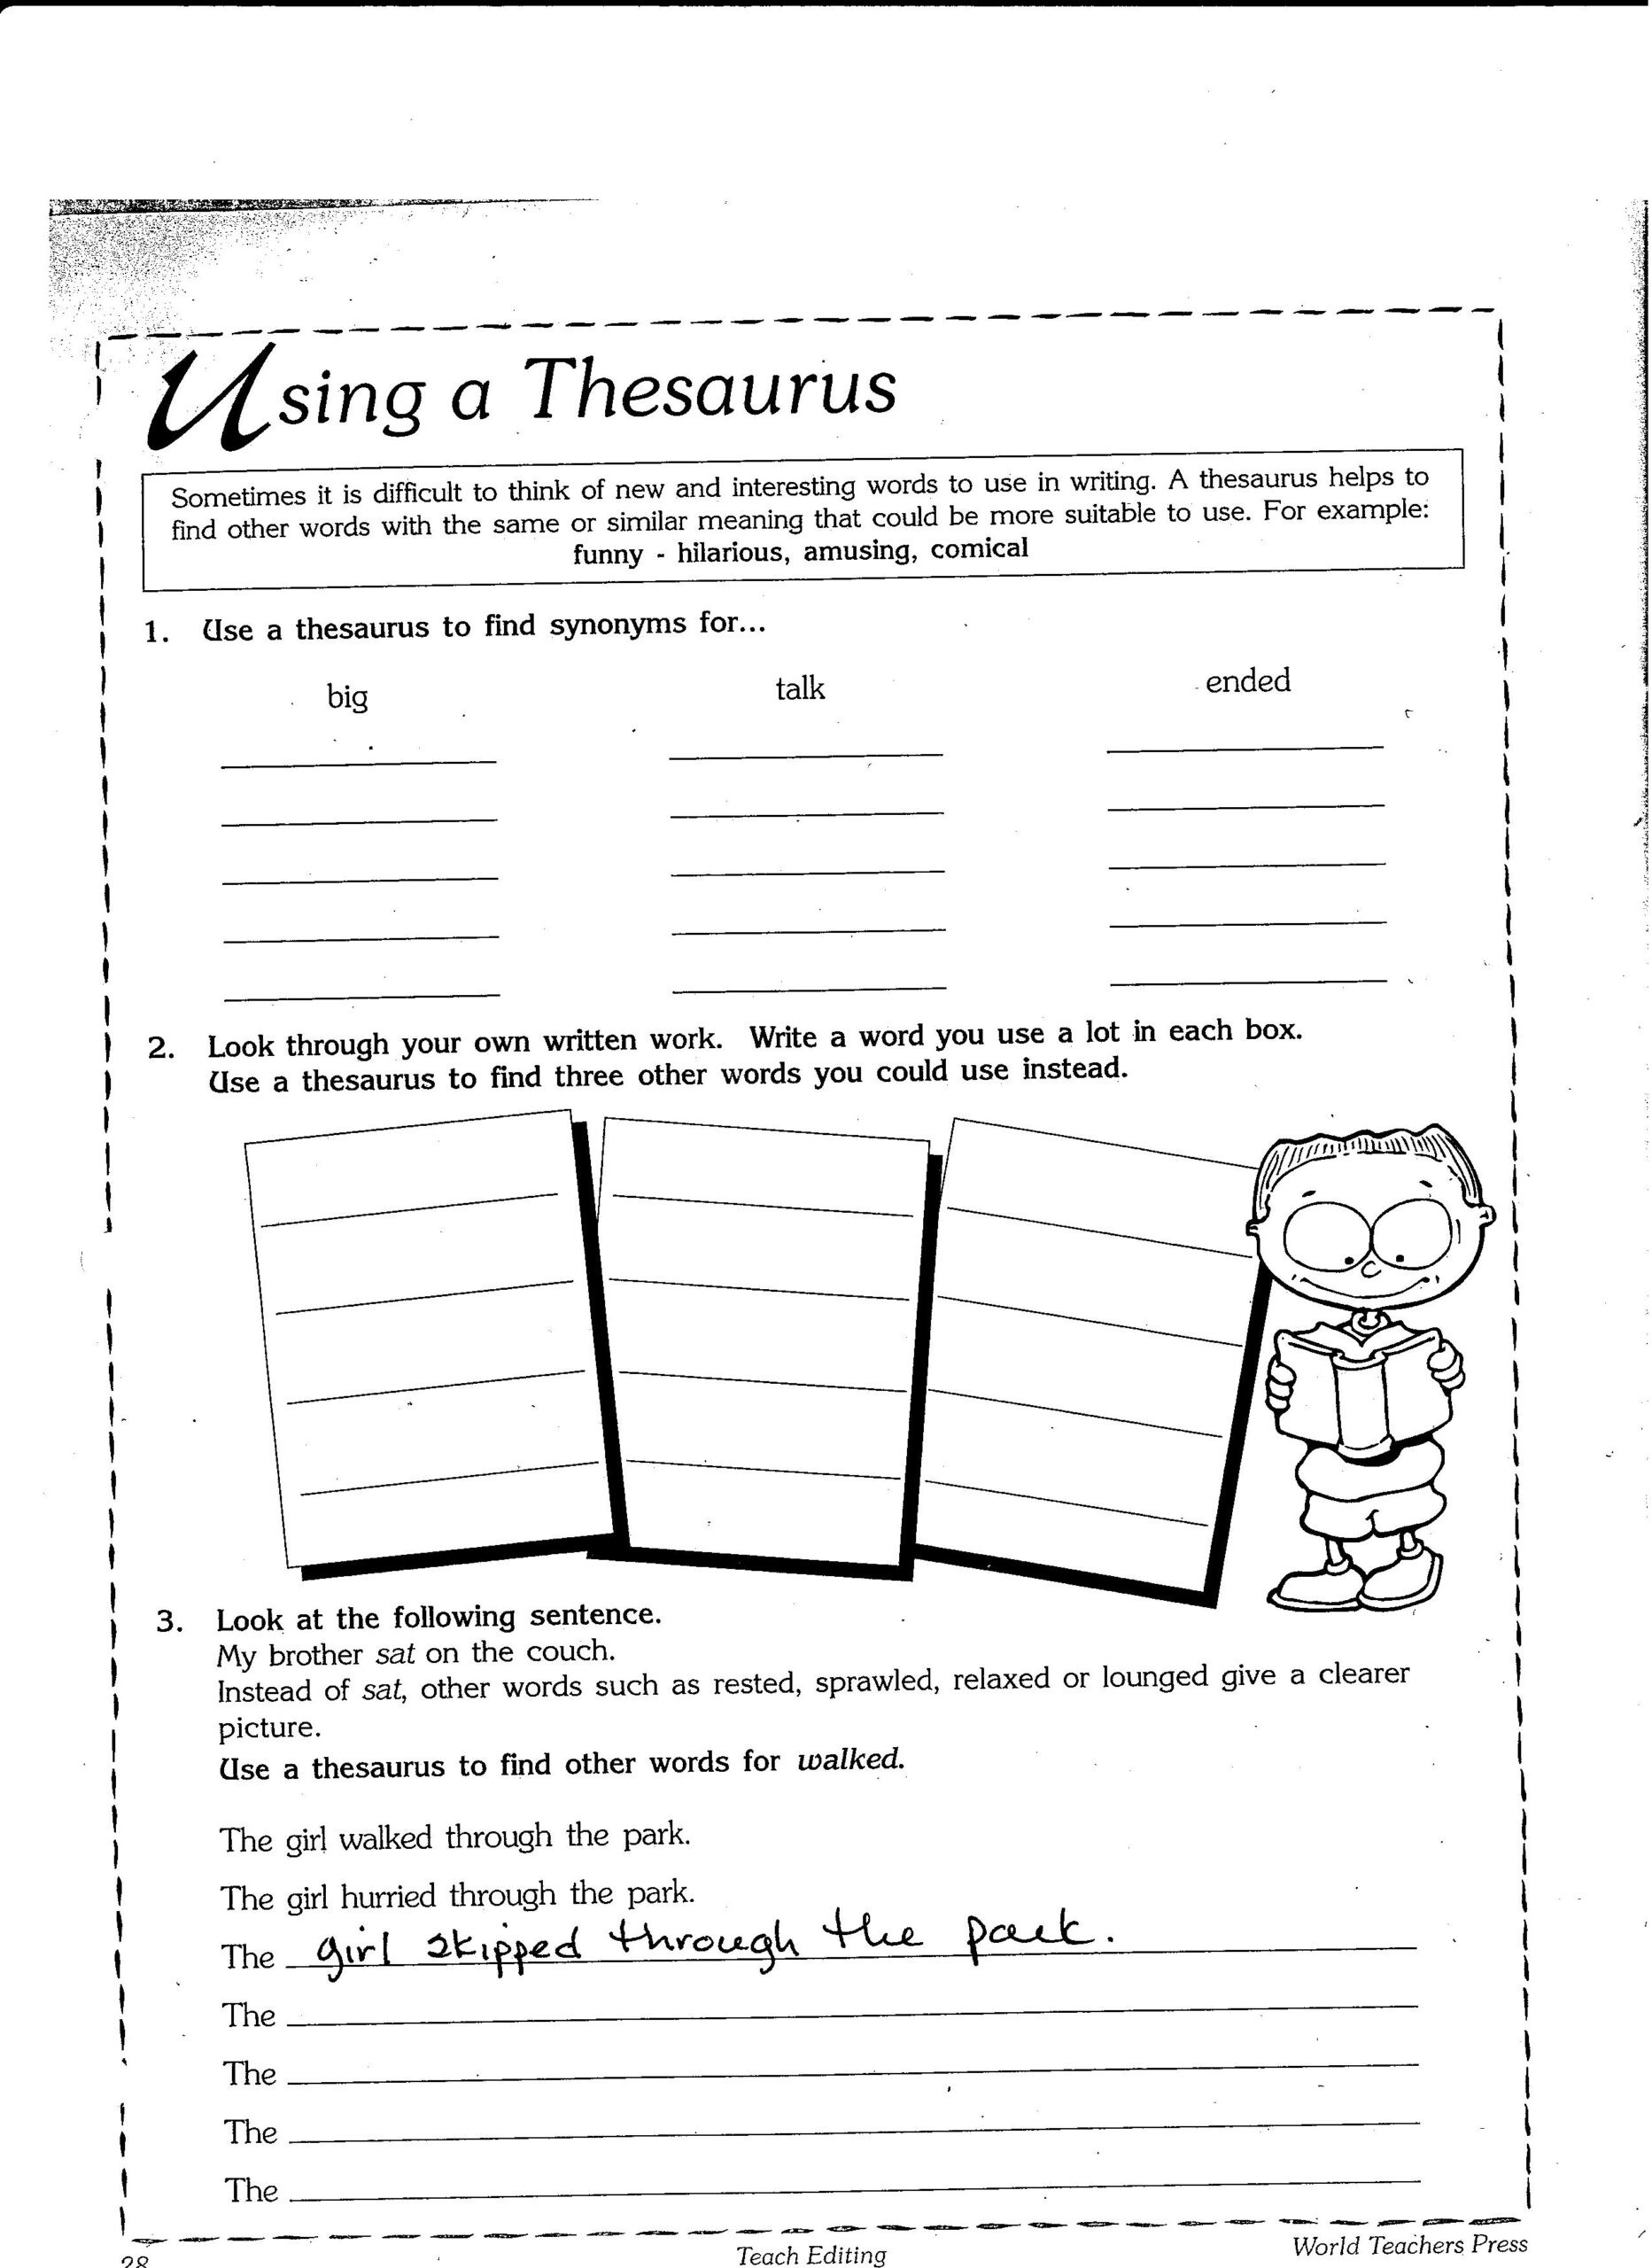 Editing Worksheets High School Cool Math Games for Kids Best Coloring Pages to Print Free